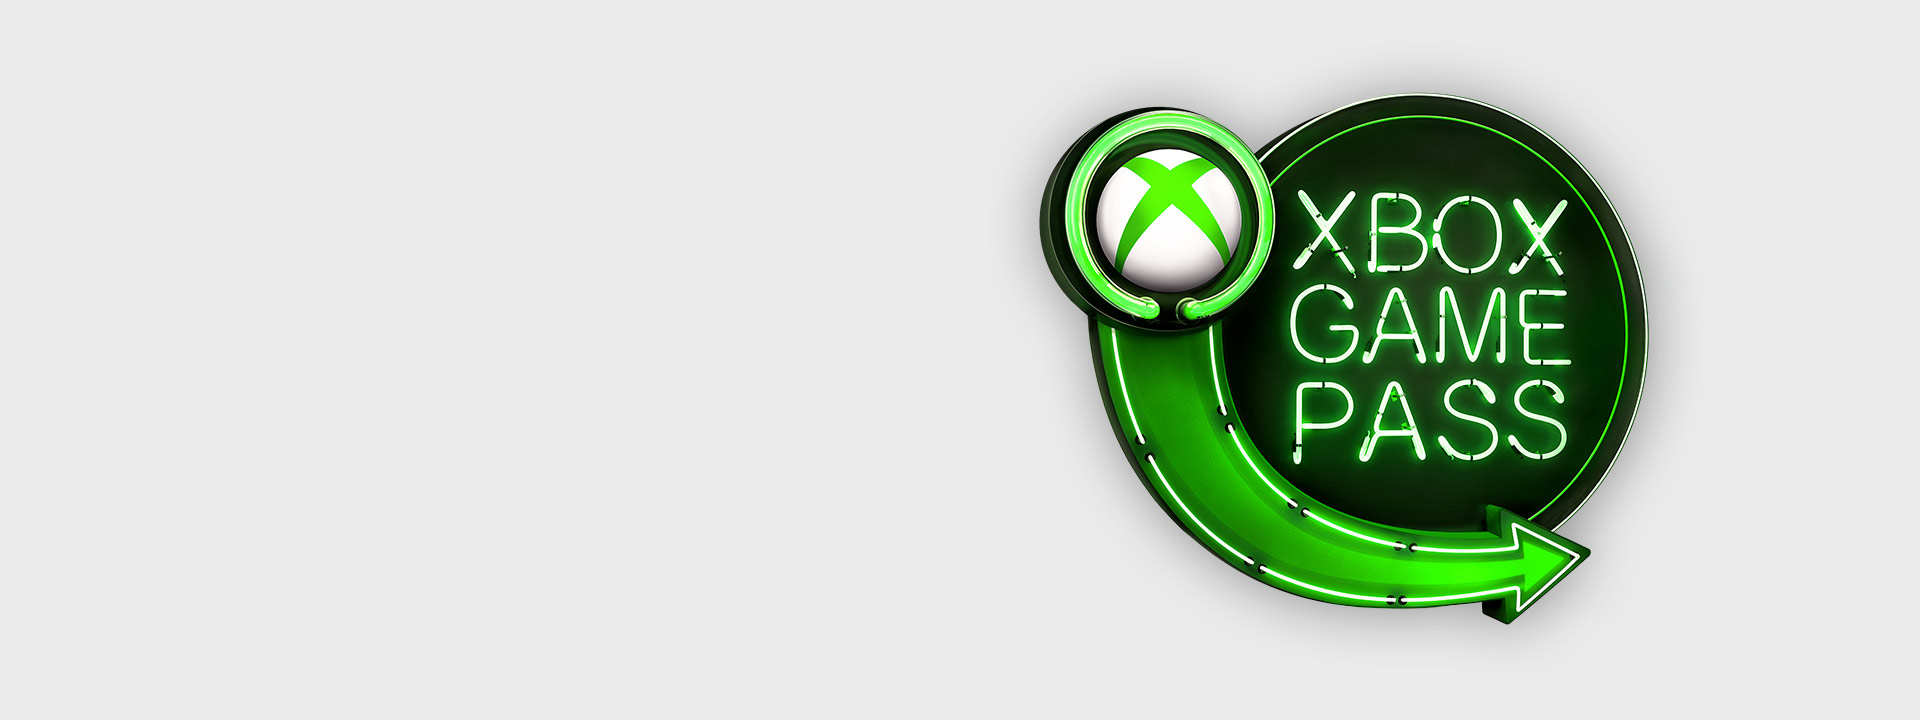 Xbox Game Pass sign logo